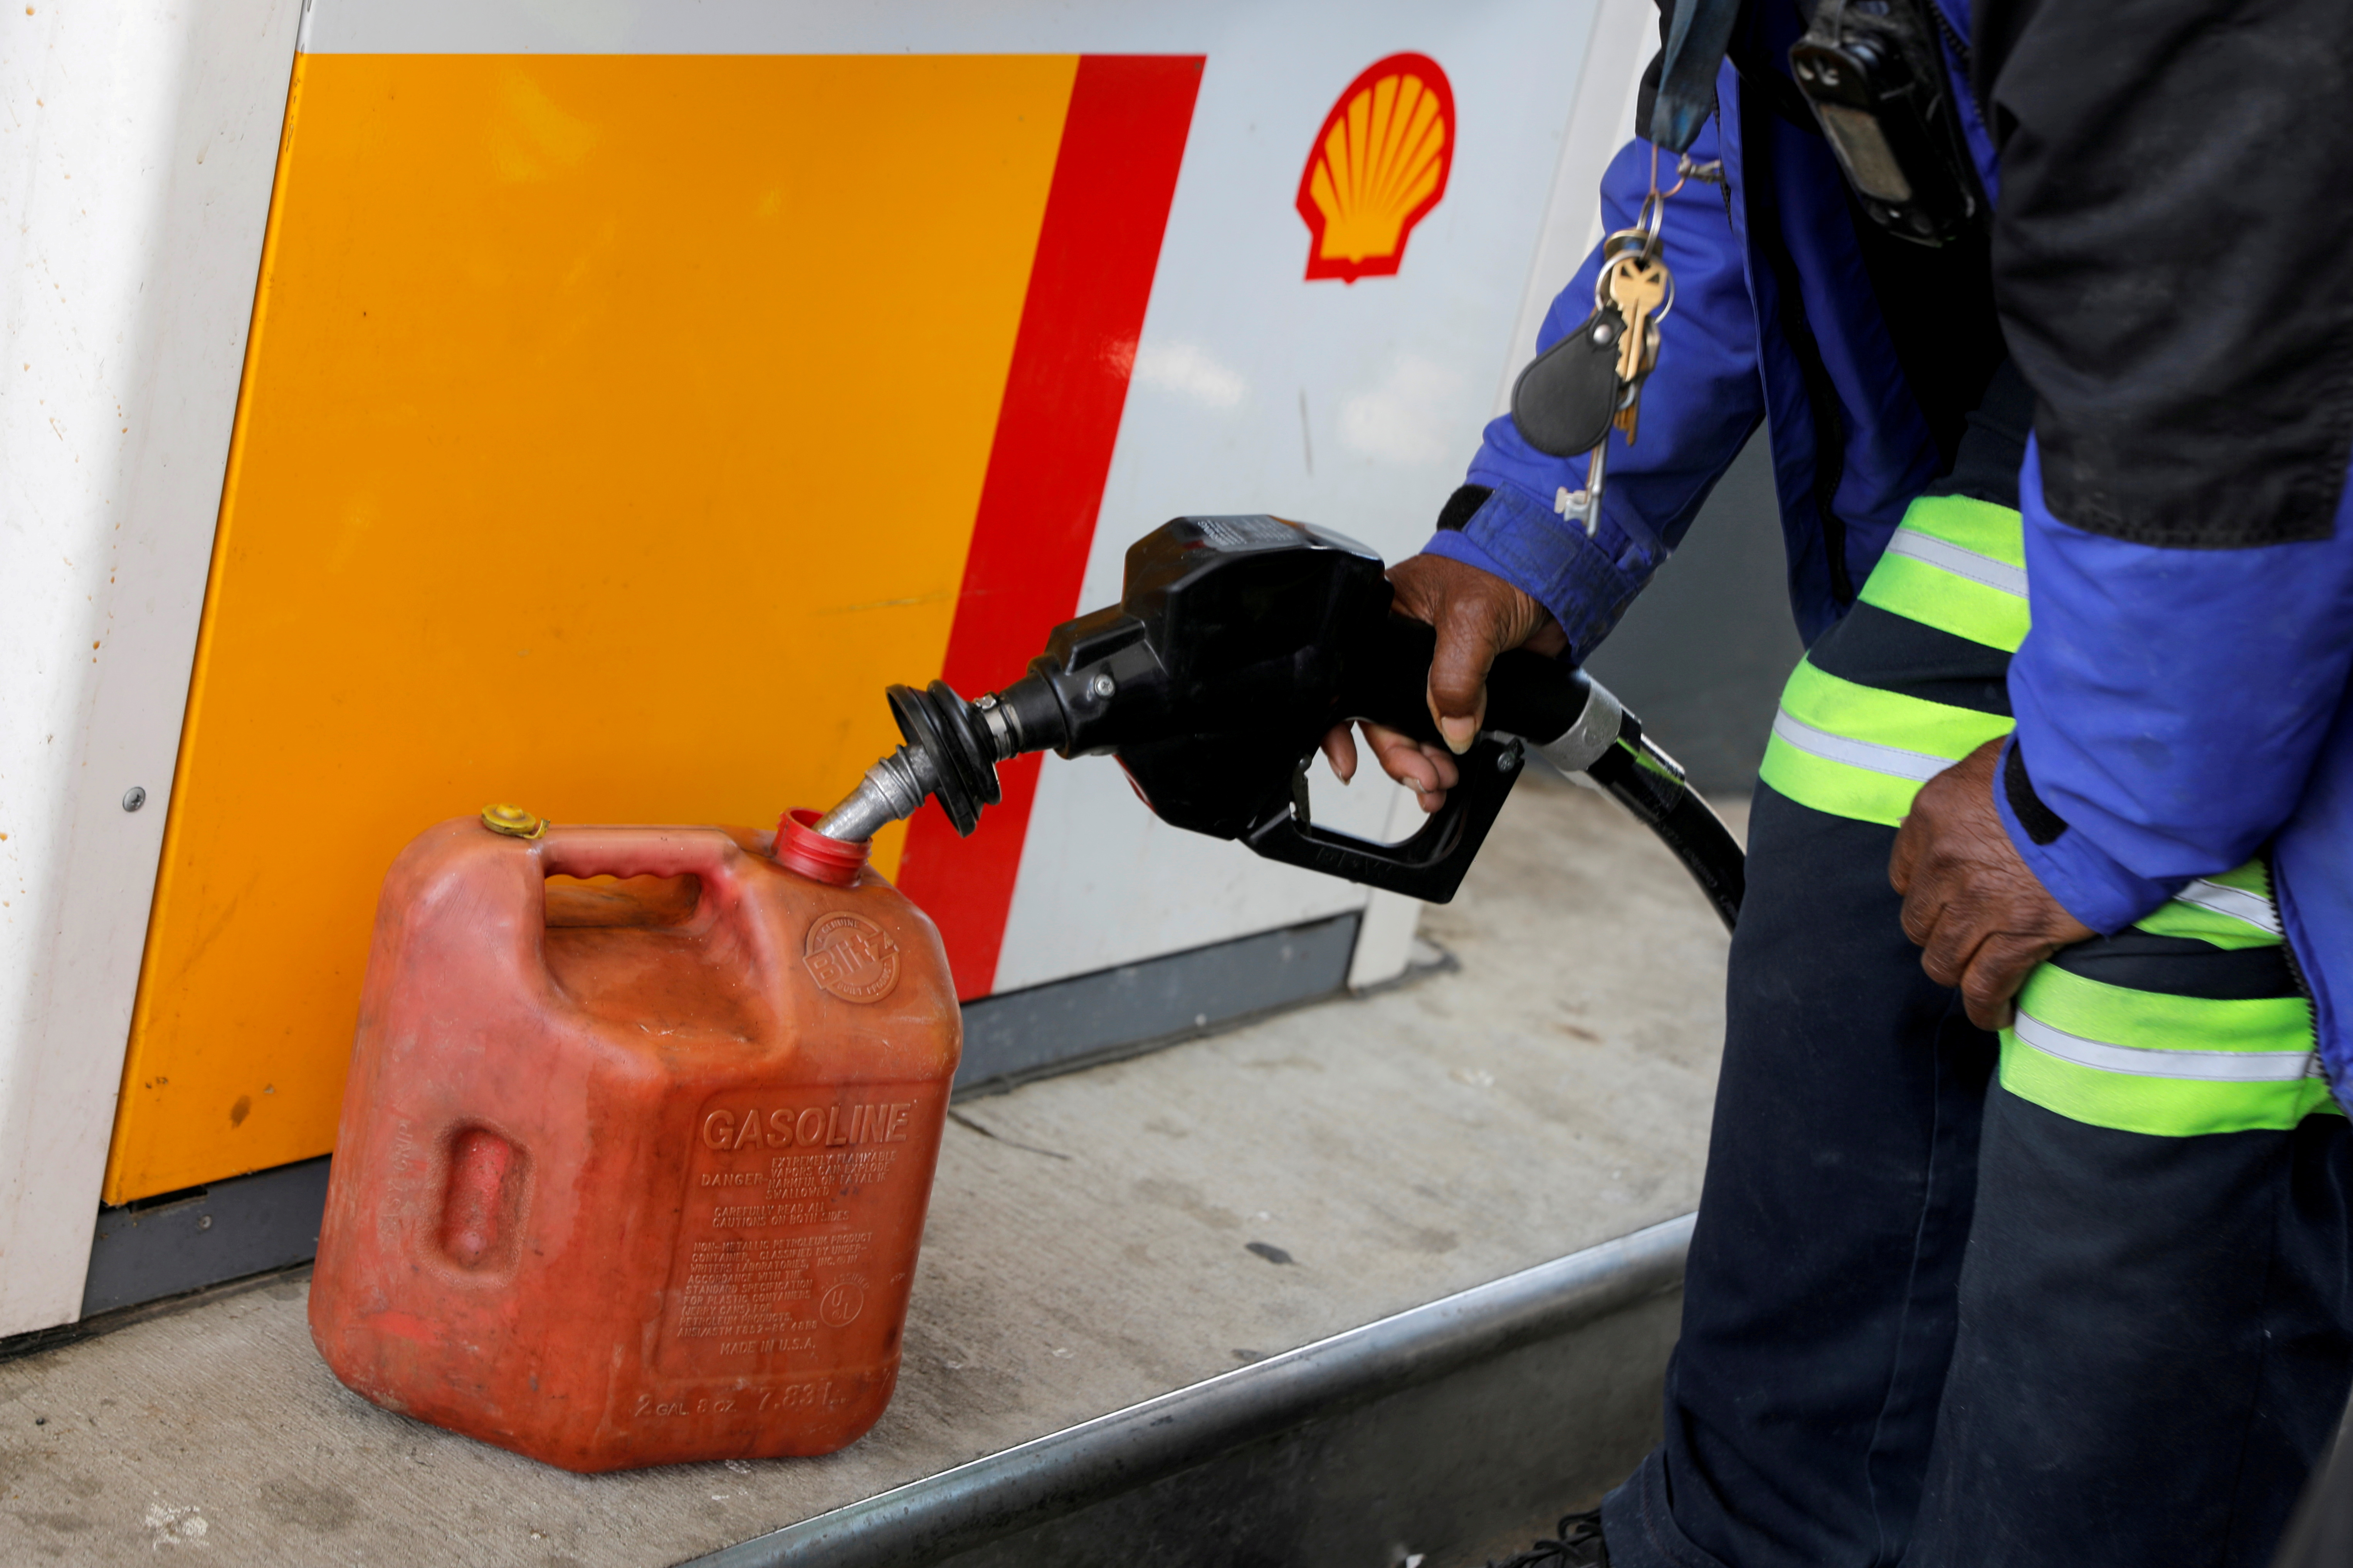 A person fills a fuel container at a Shell gas station, after a cyberattack crippled the biggest fuel pipeline in the country, run by Colonial Pipeline, in Washington, D.C., U.S., May 15, 2021. REUTERS/Andrew Kelly/File Photo